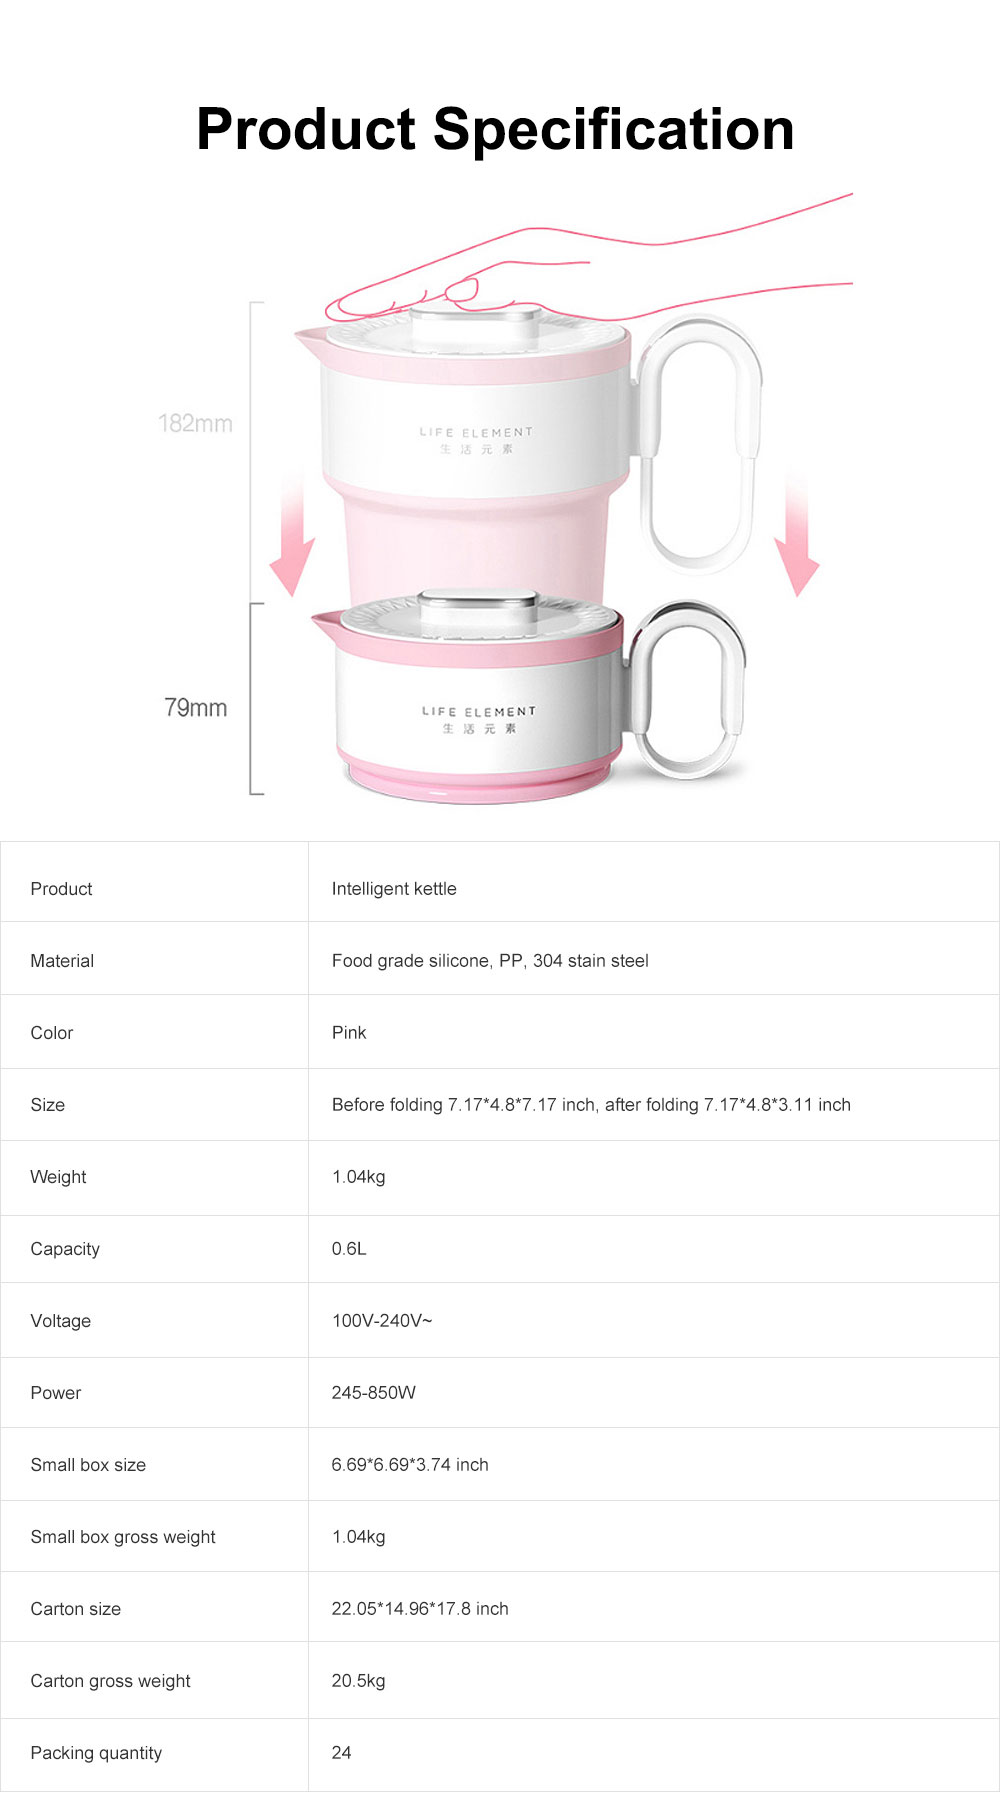 Portable Electric Heating Cup, Food Grade Silicone Pink Compression Folding Kettle for Travel, Life Element Intelligent Water Bottle 7